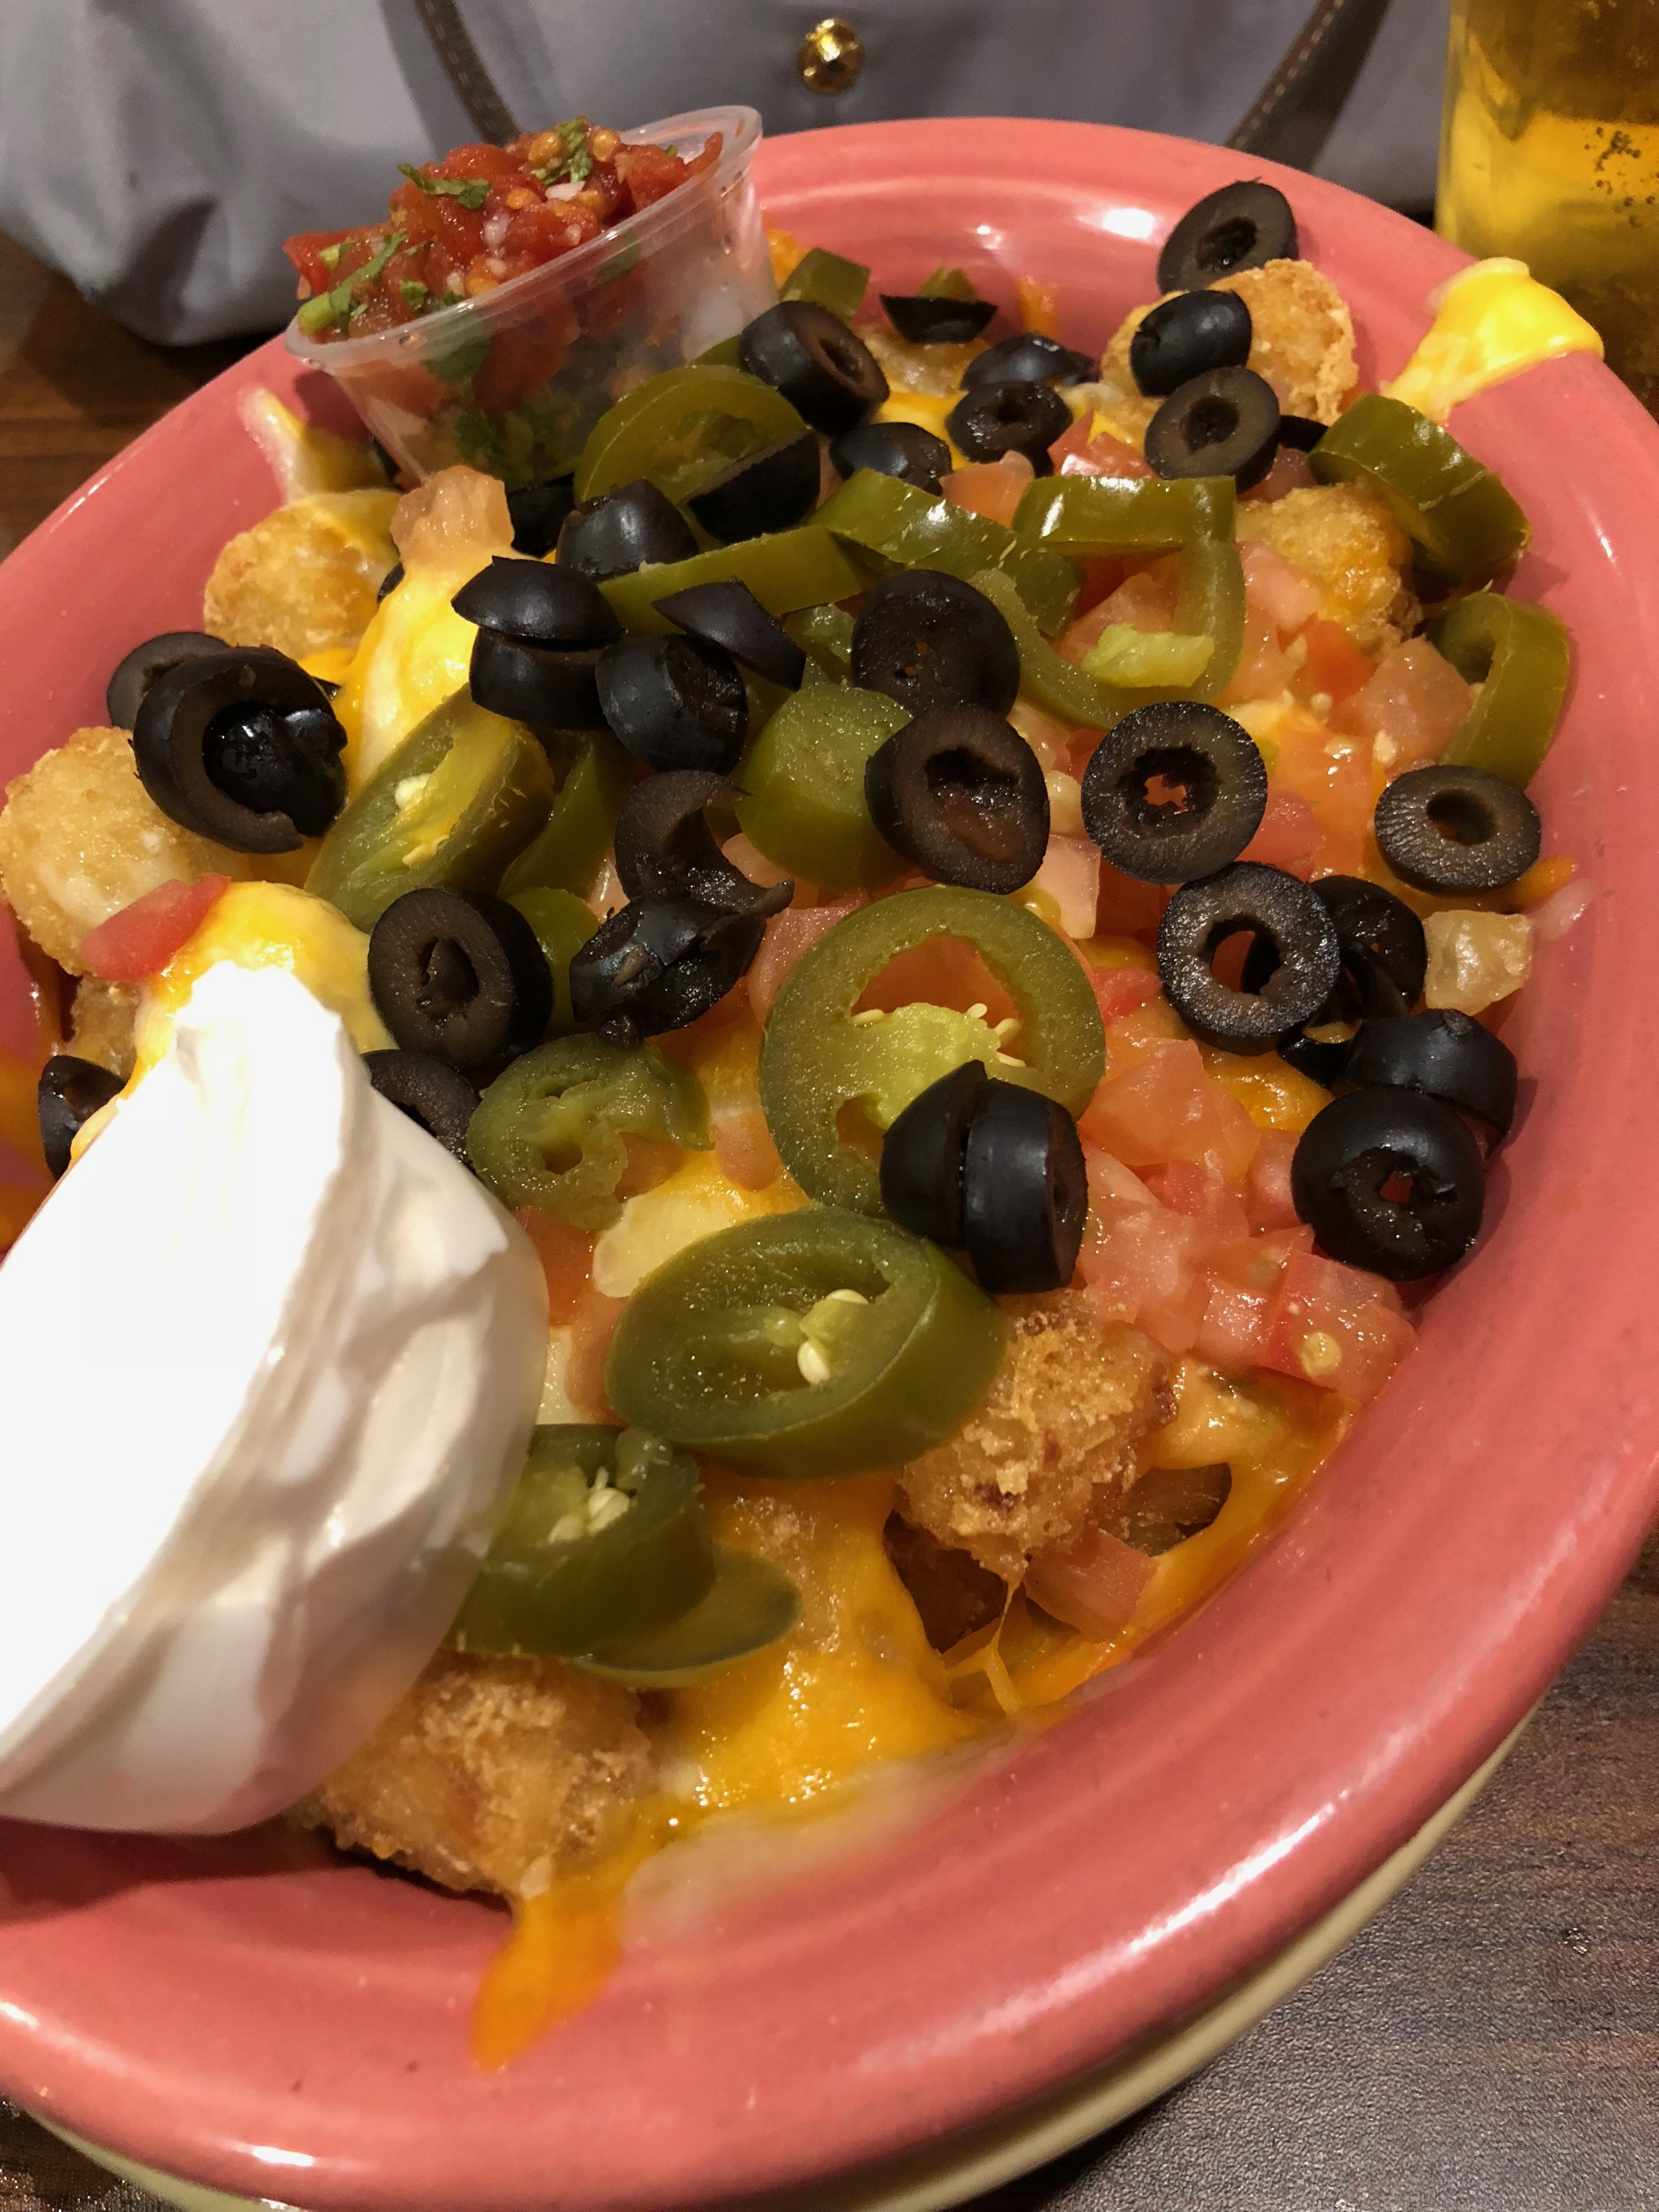 Tot-Chos - Tator tots topped with nacho cheese, jalapeños, sliced black olives, and tomatoes. Served with fresh pico de gallo and sour cream